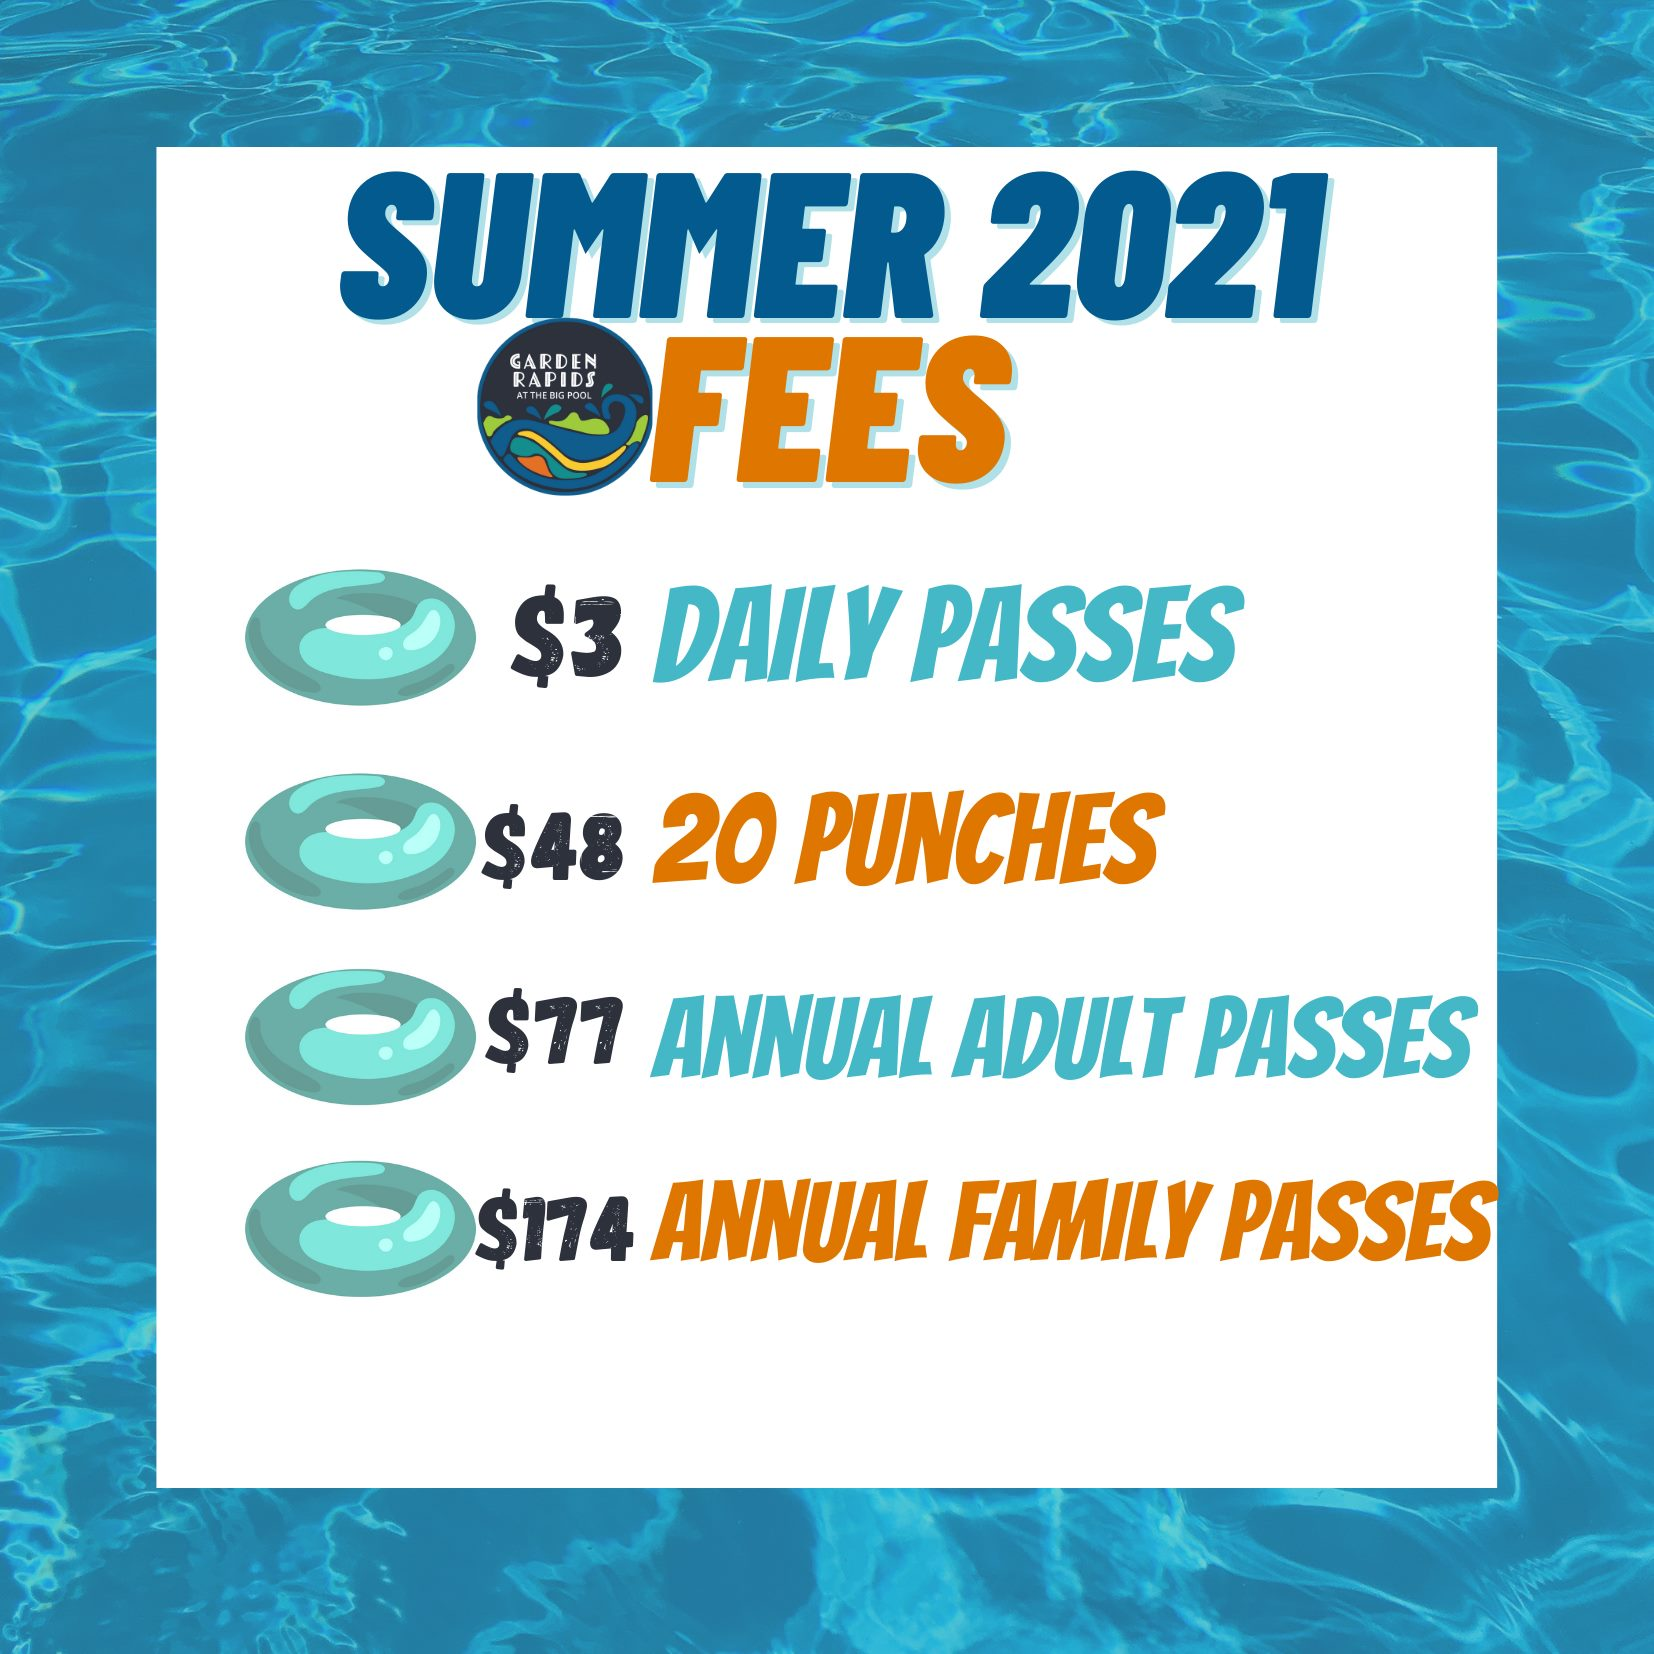 2021 summer pricing